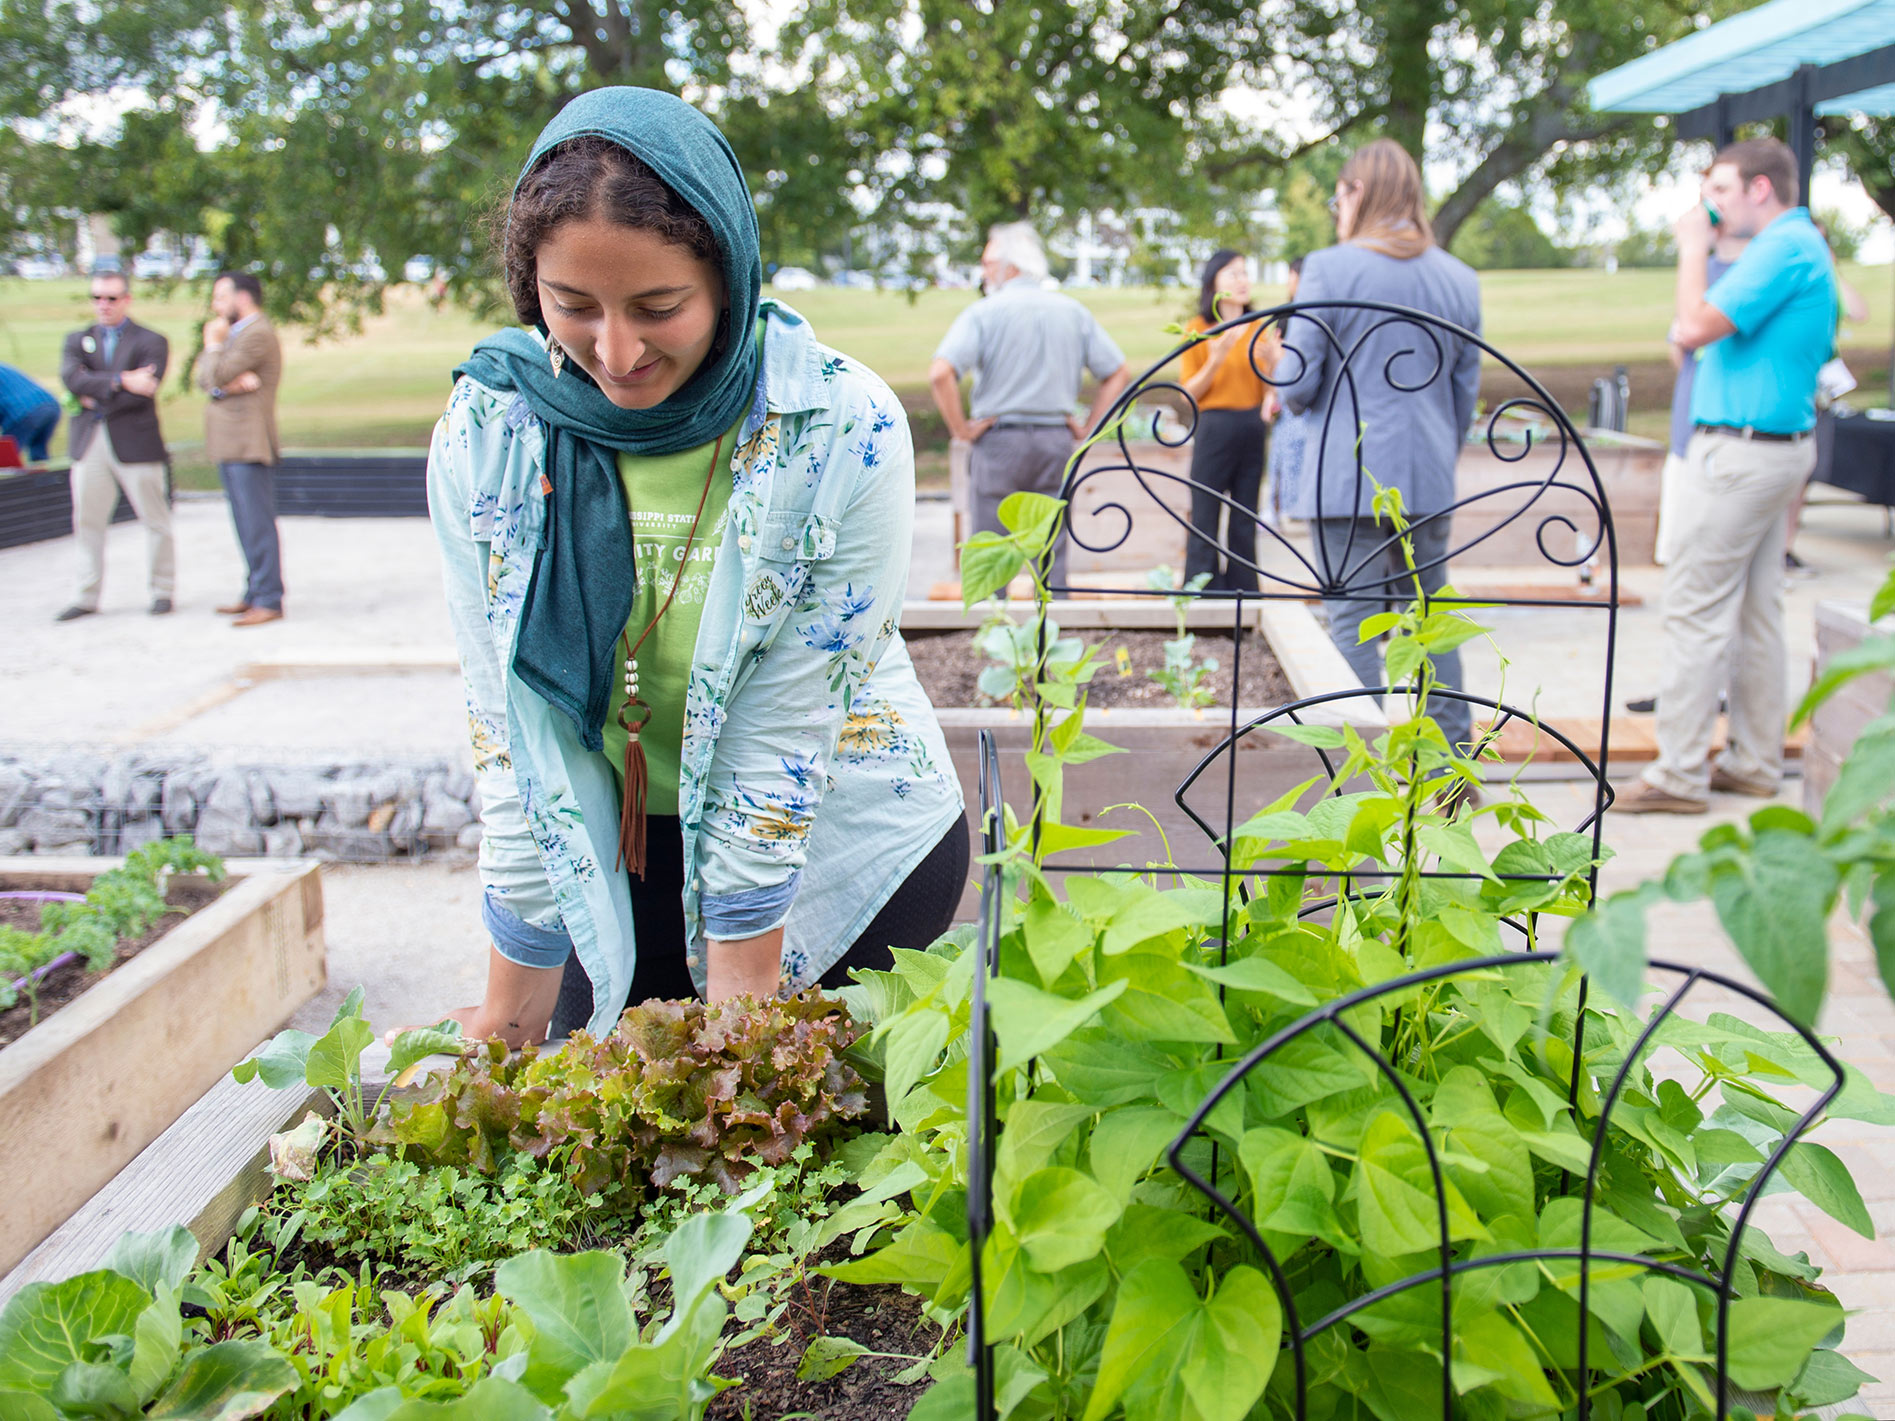 A woman with a teal scarf wrapped around her head leans toward a gardening box filled with bright green, leafy plants. Several other people stand conversing in the background.